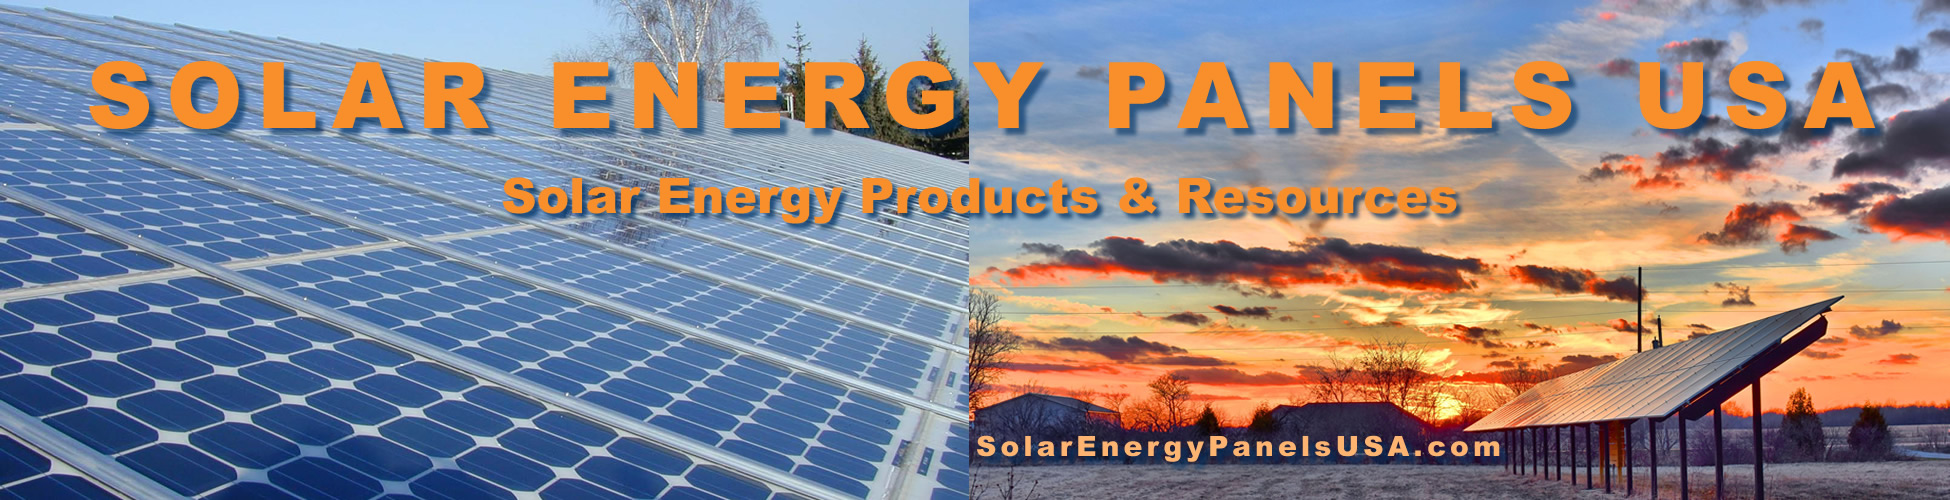 Solar Energy Panels USA